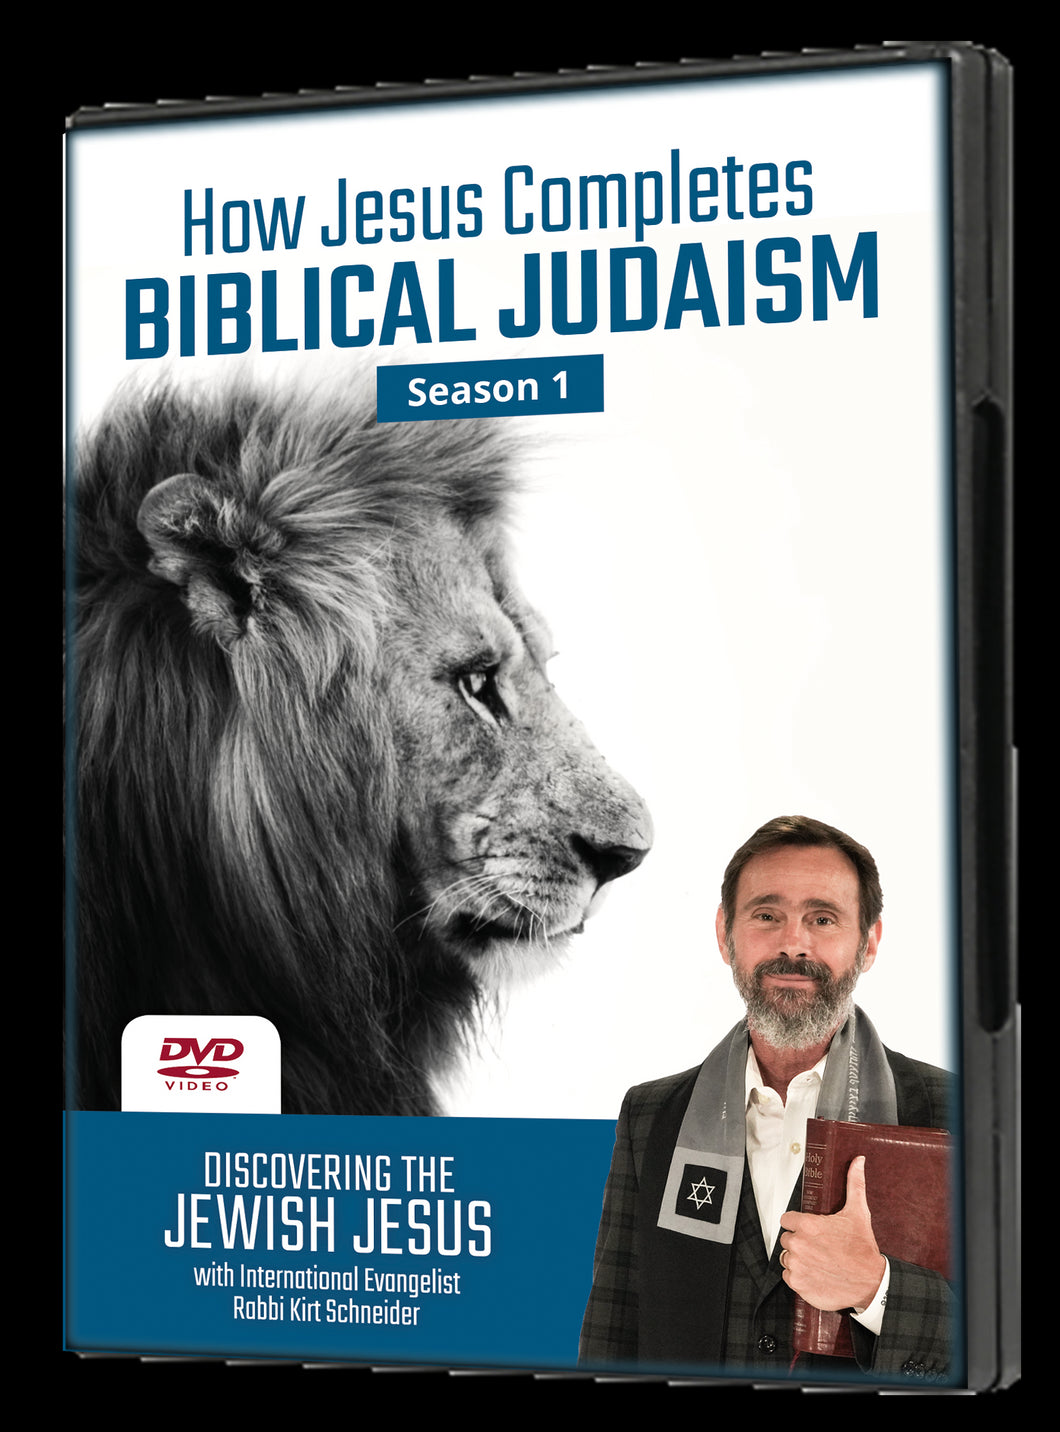 How Jesus Completes Biblical Judaism Season 1